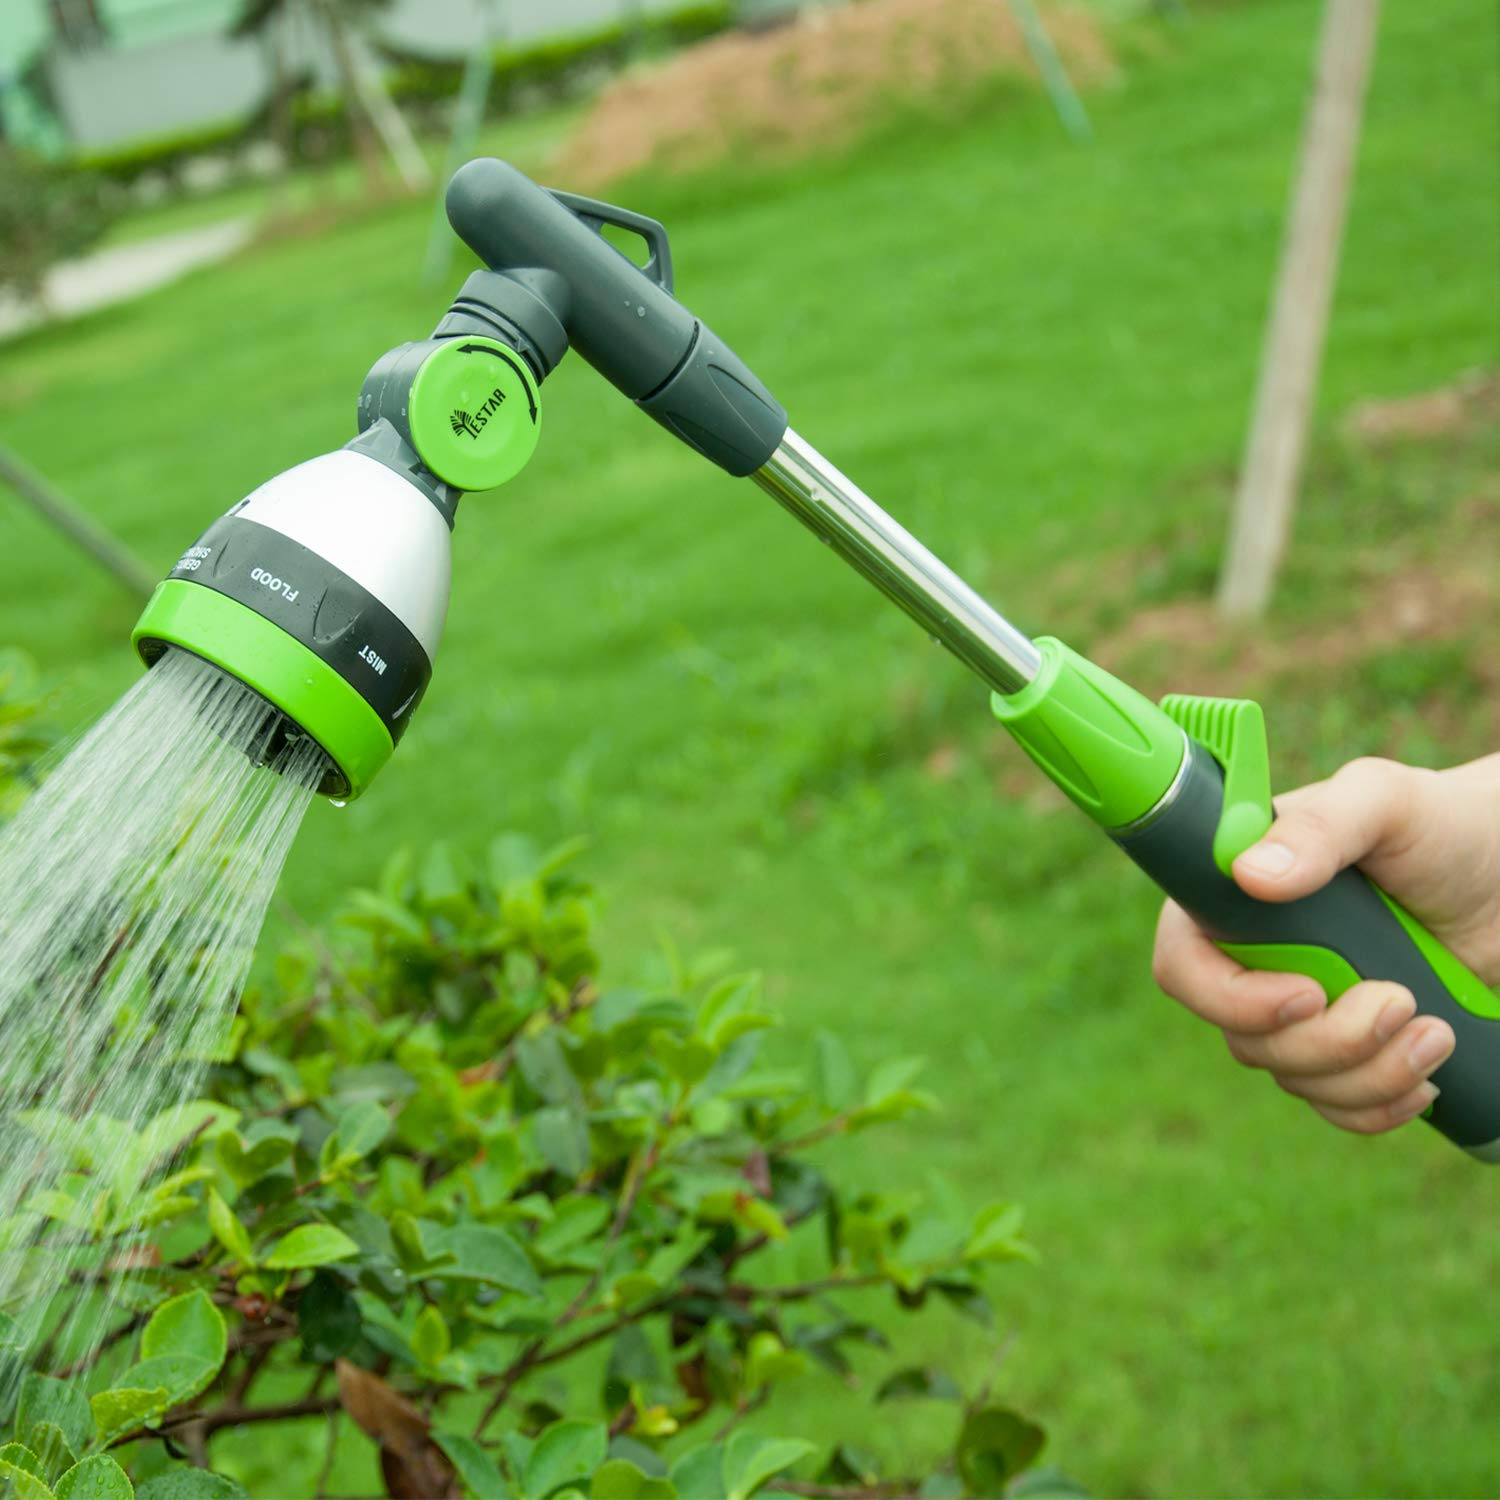 YeStar Watering Wand, 19 inch 2-in-1 Garden Lawn Hose Nozzle Spray Wand with 7 Adjustable High Pressure Water Patterns, One Touch Shutoff Valve, Green